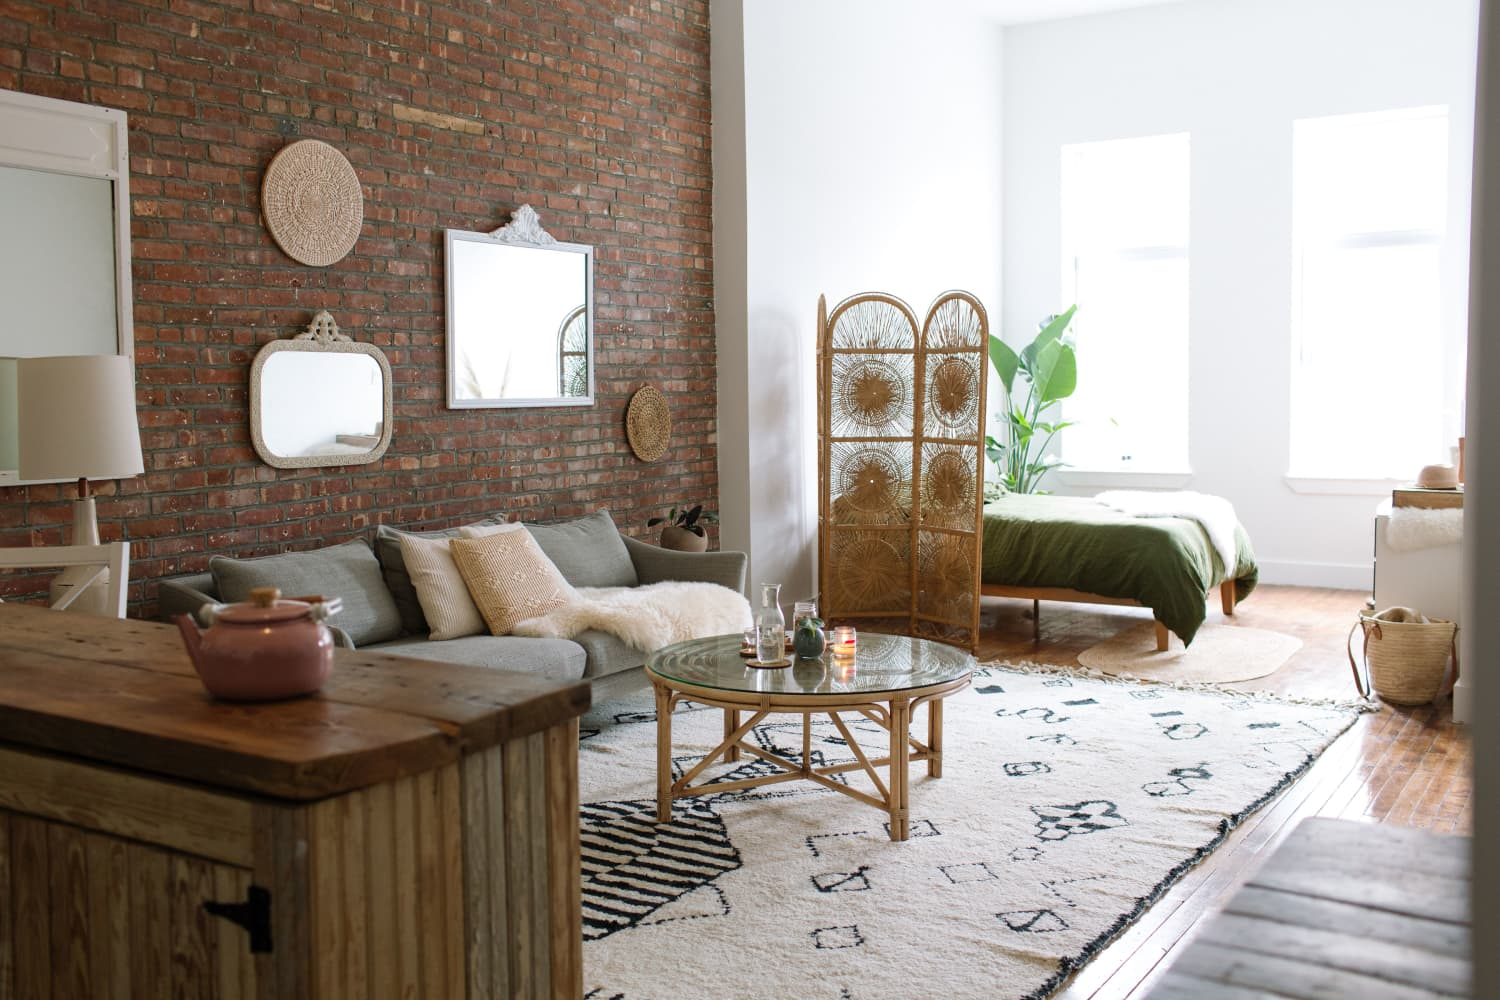 APARTMENT THERAPY Digest - cover